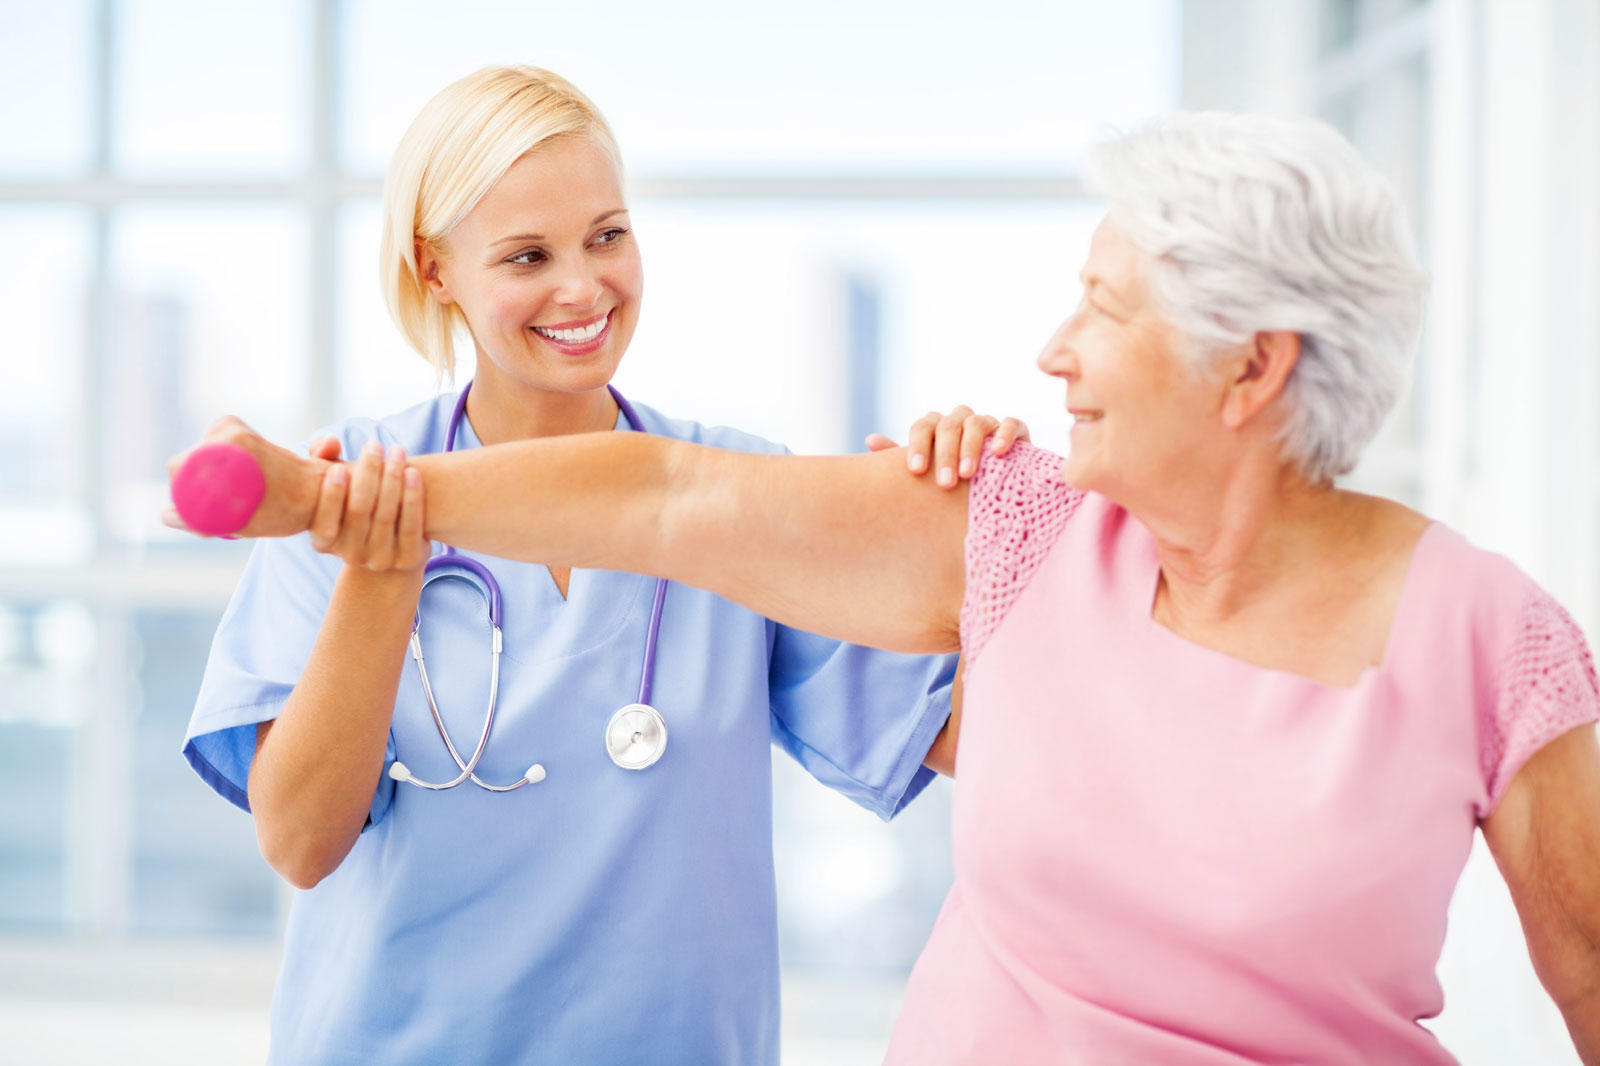 Careers in physical therapy - Swansea 508 675 3200 Providence 401 453 5800